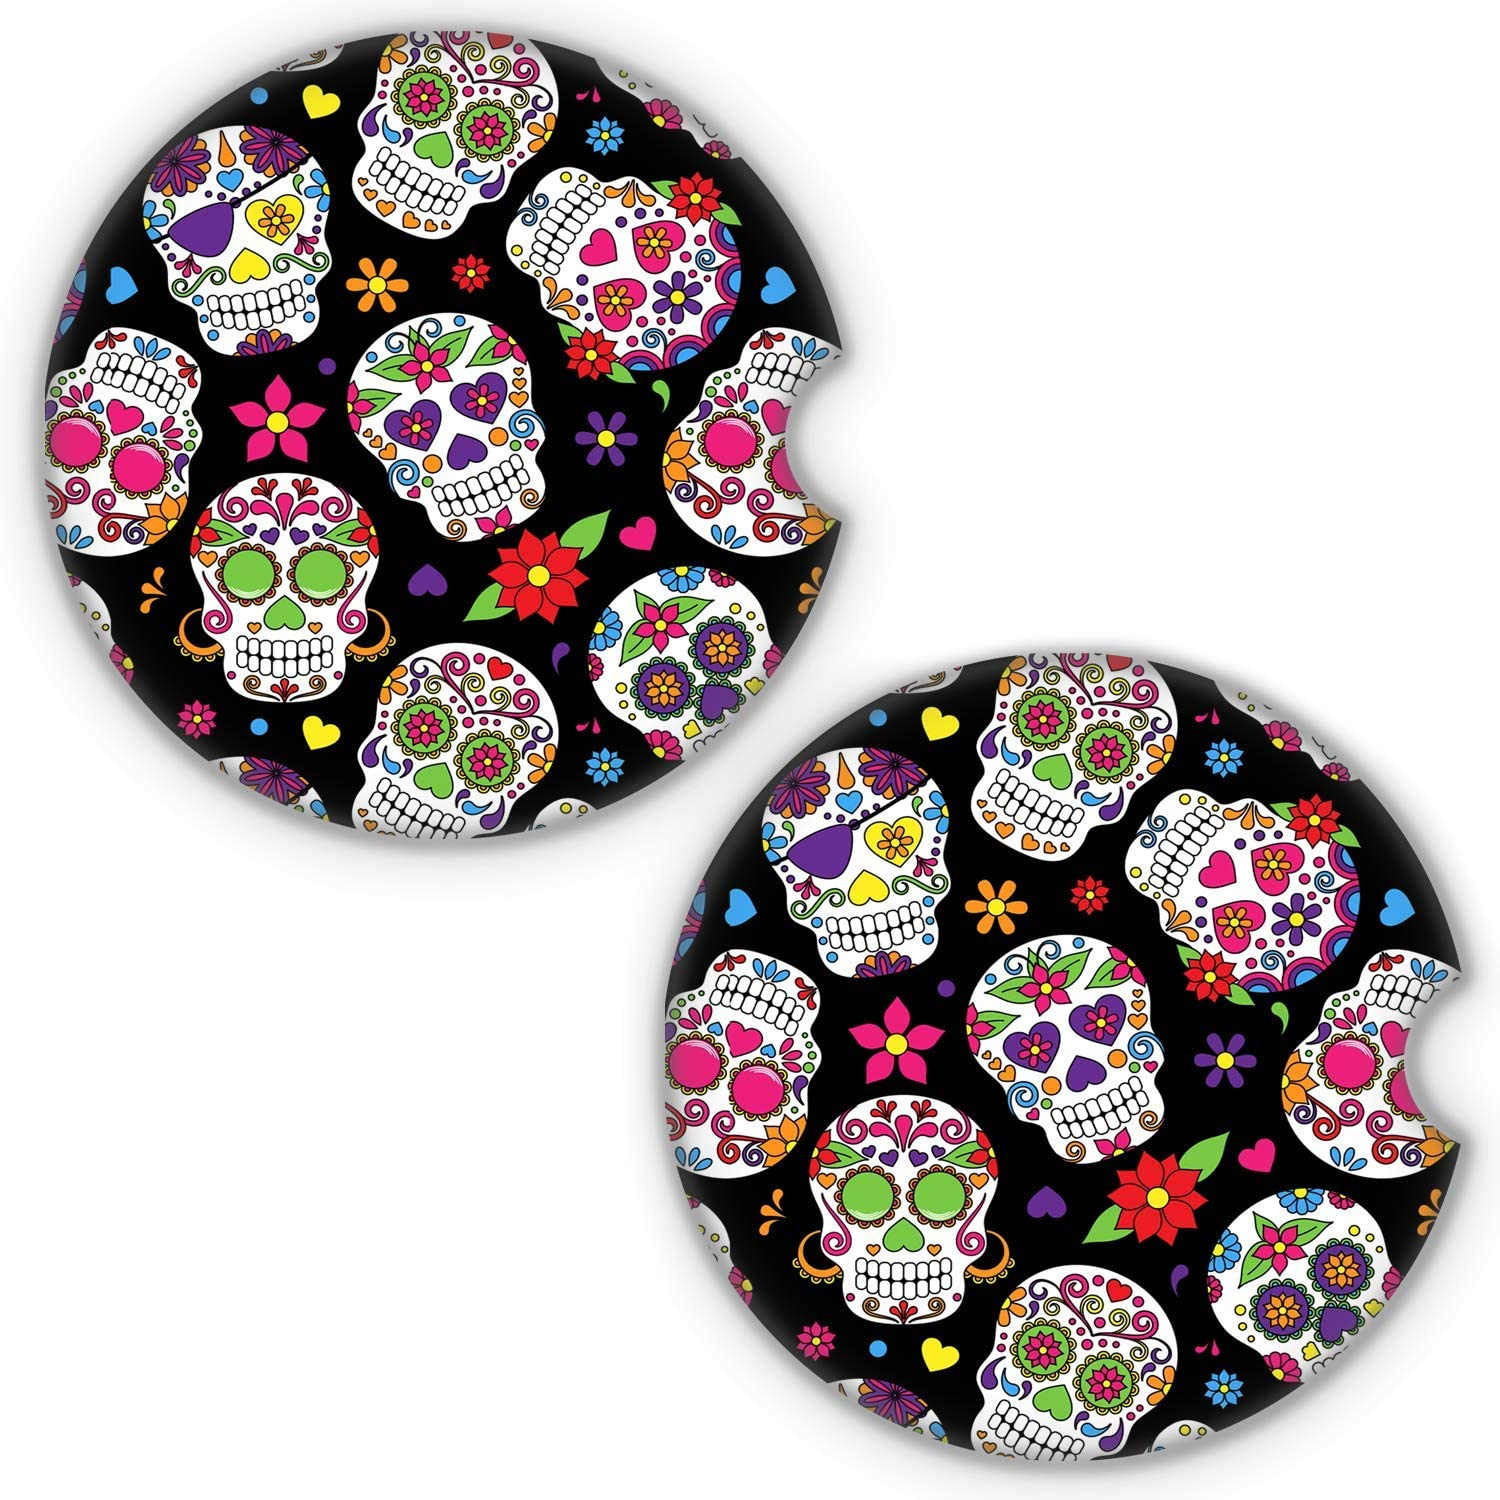 LANEABUY 2PCS 2.56 Inch Car Absorbent Ceramic Coasters for Drinks Cup Coaster Car Cup Pad Mat Car Accessories for Car Decor - Dead Sugar Skull Floral